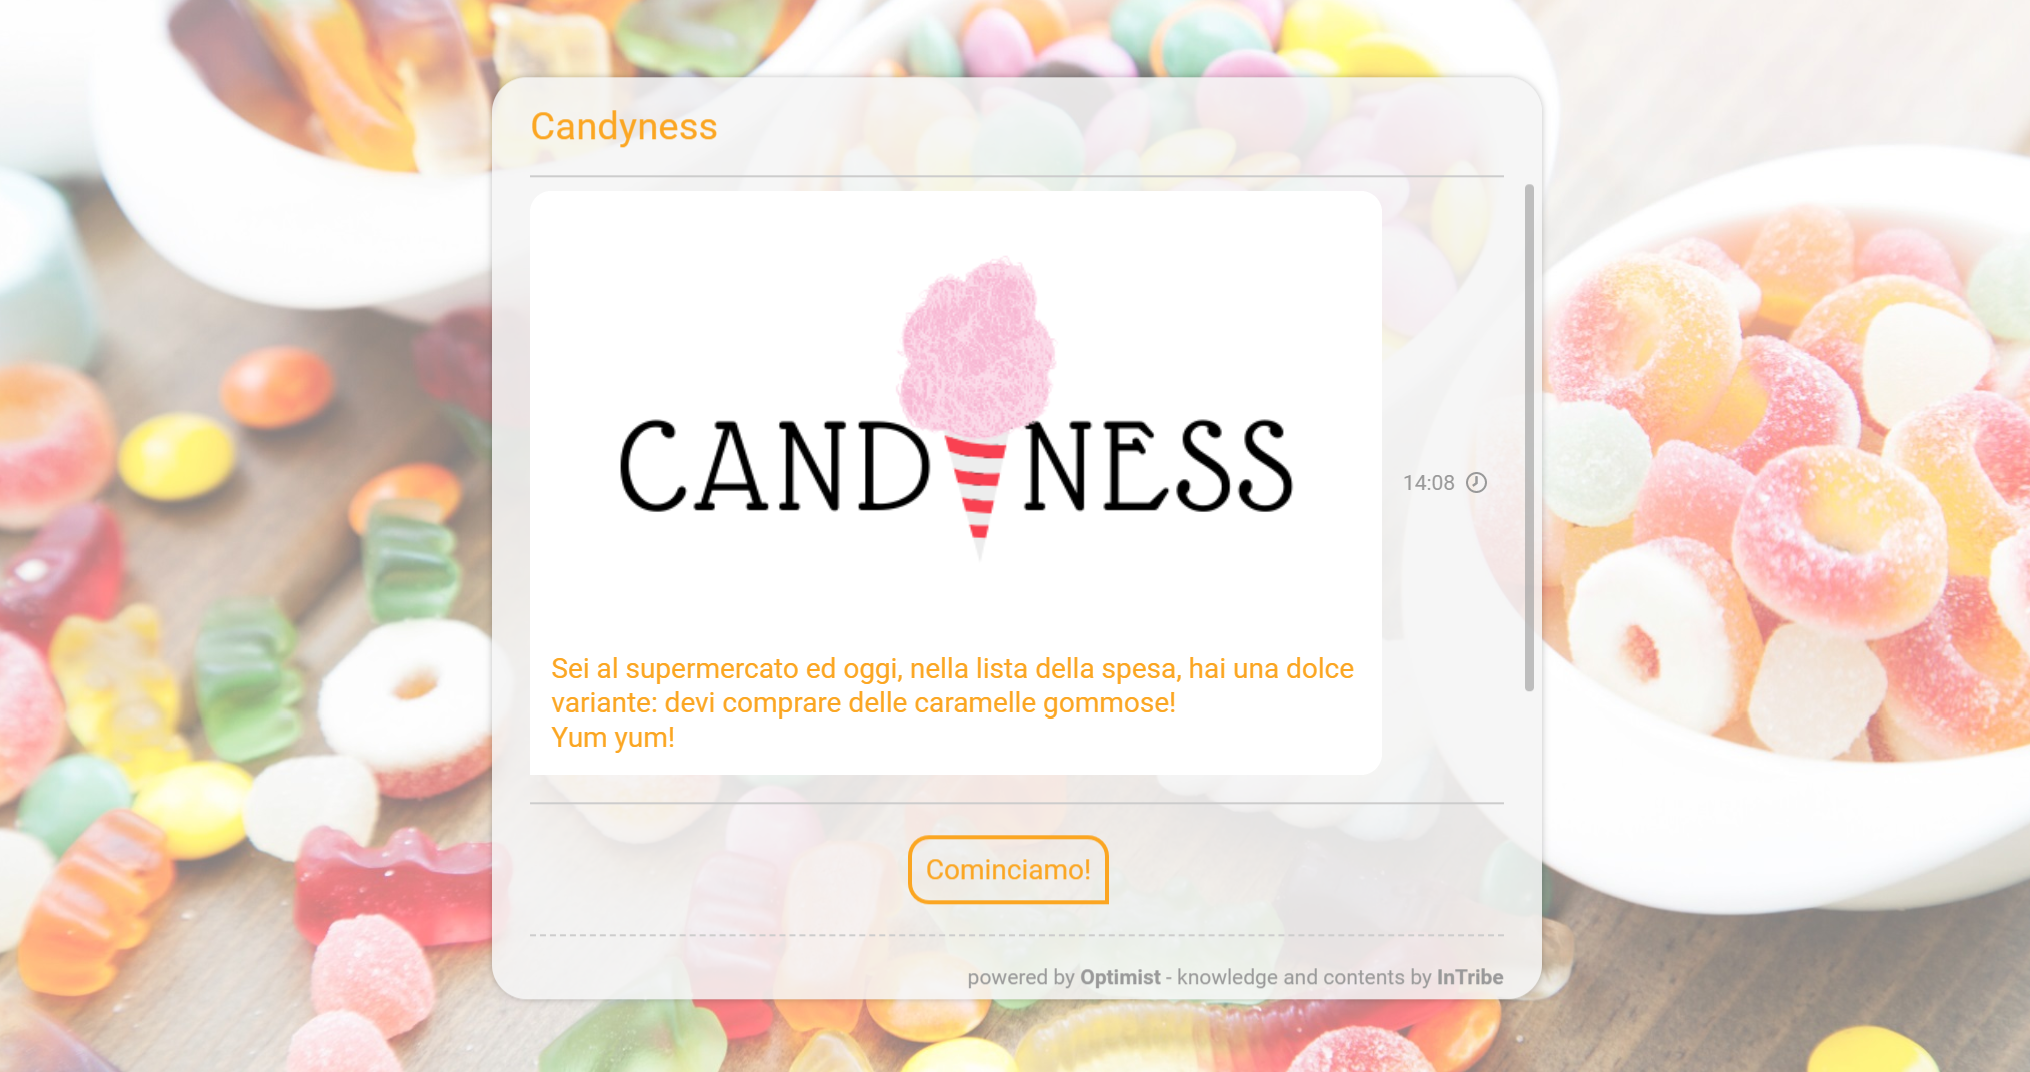 candyness brand awareness intribe survey indagini